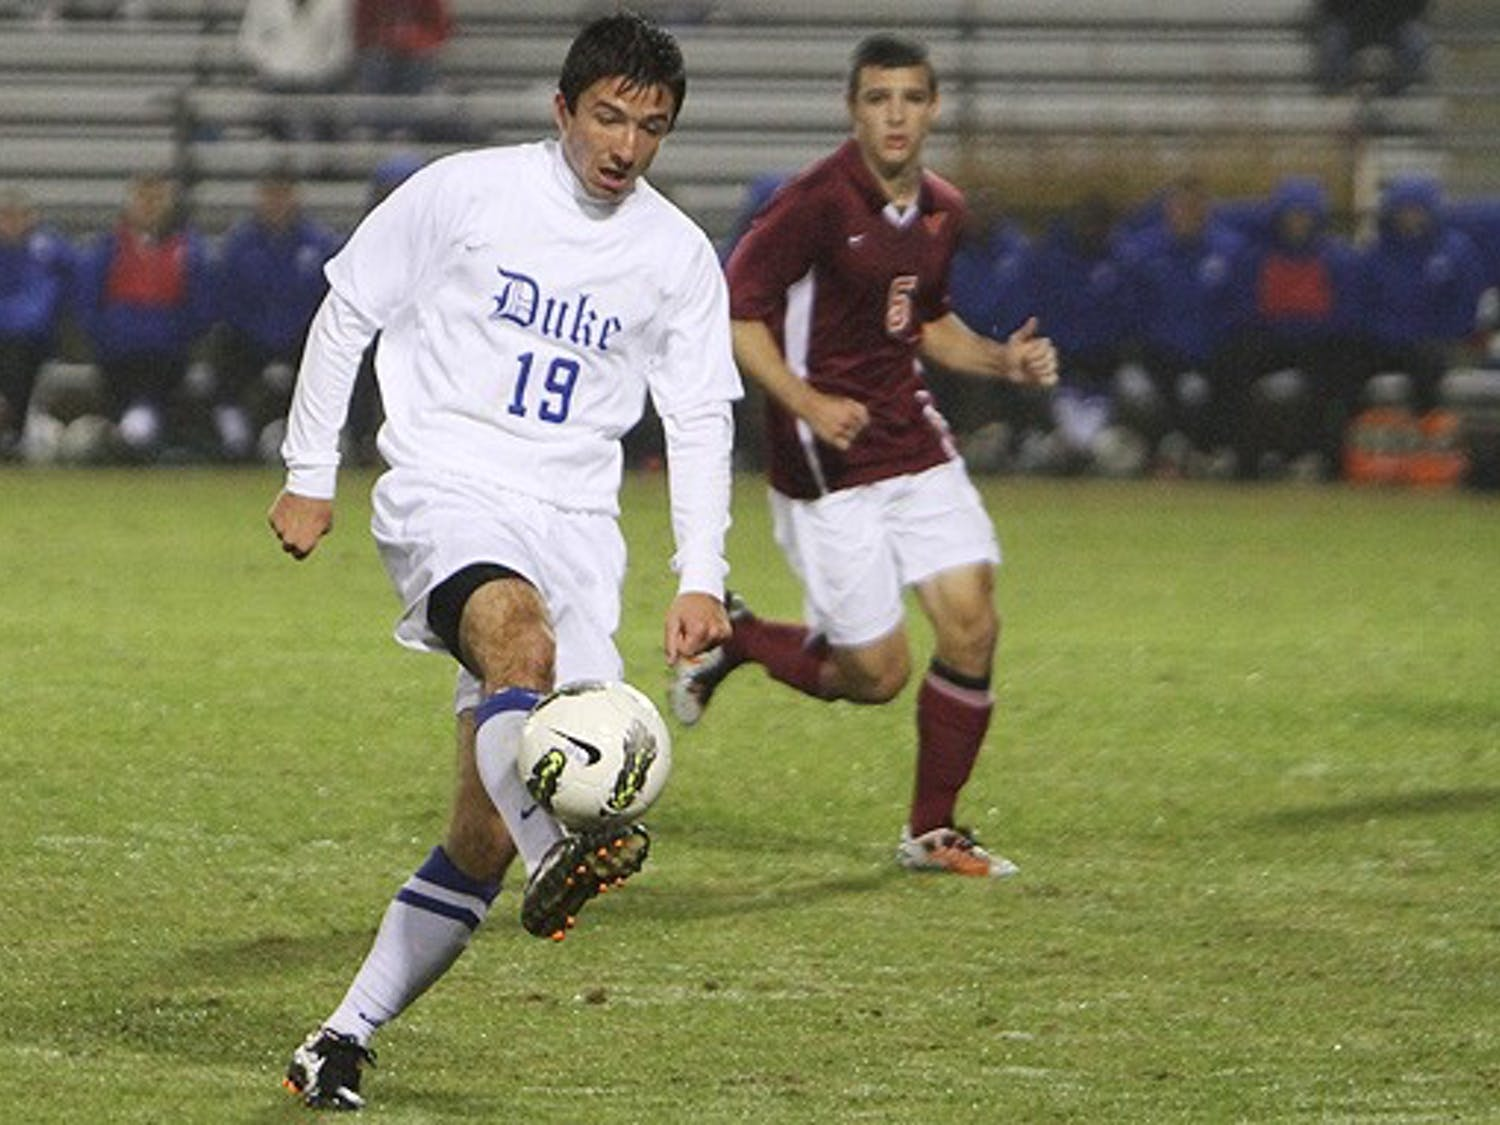 Chris Tweed-Kent was not recruited by a top collegiate soccer program, but the senior has become an MLS prospect.